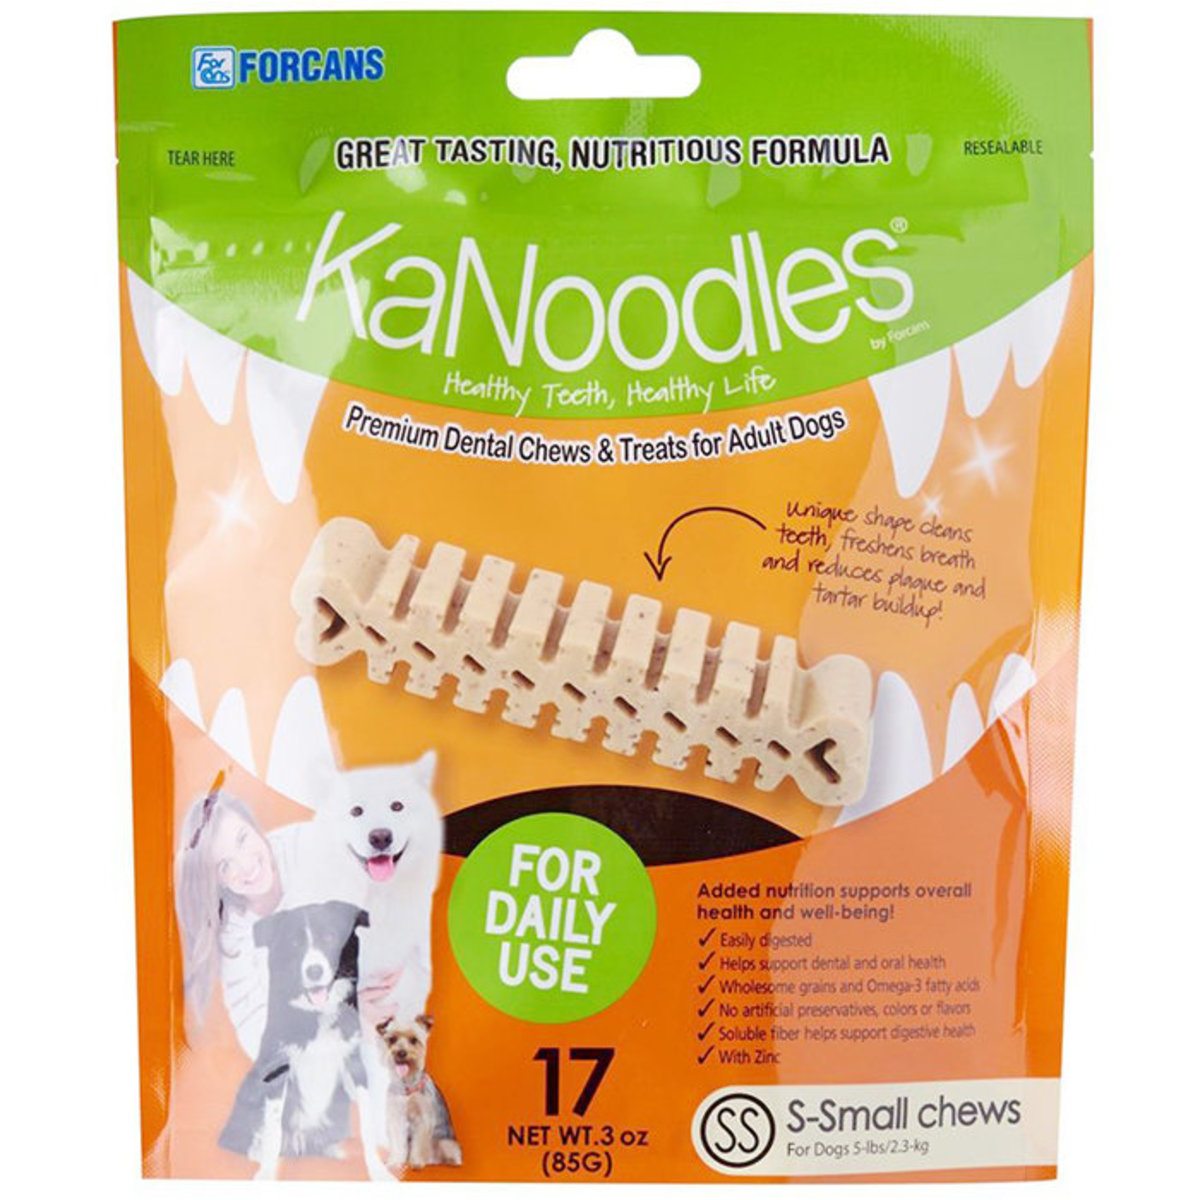 KaNoodles Premium Dental Chews & Treats for Adult Dogs SS 3oz 17pcs